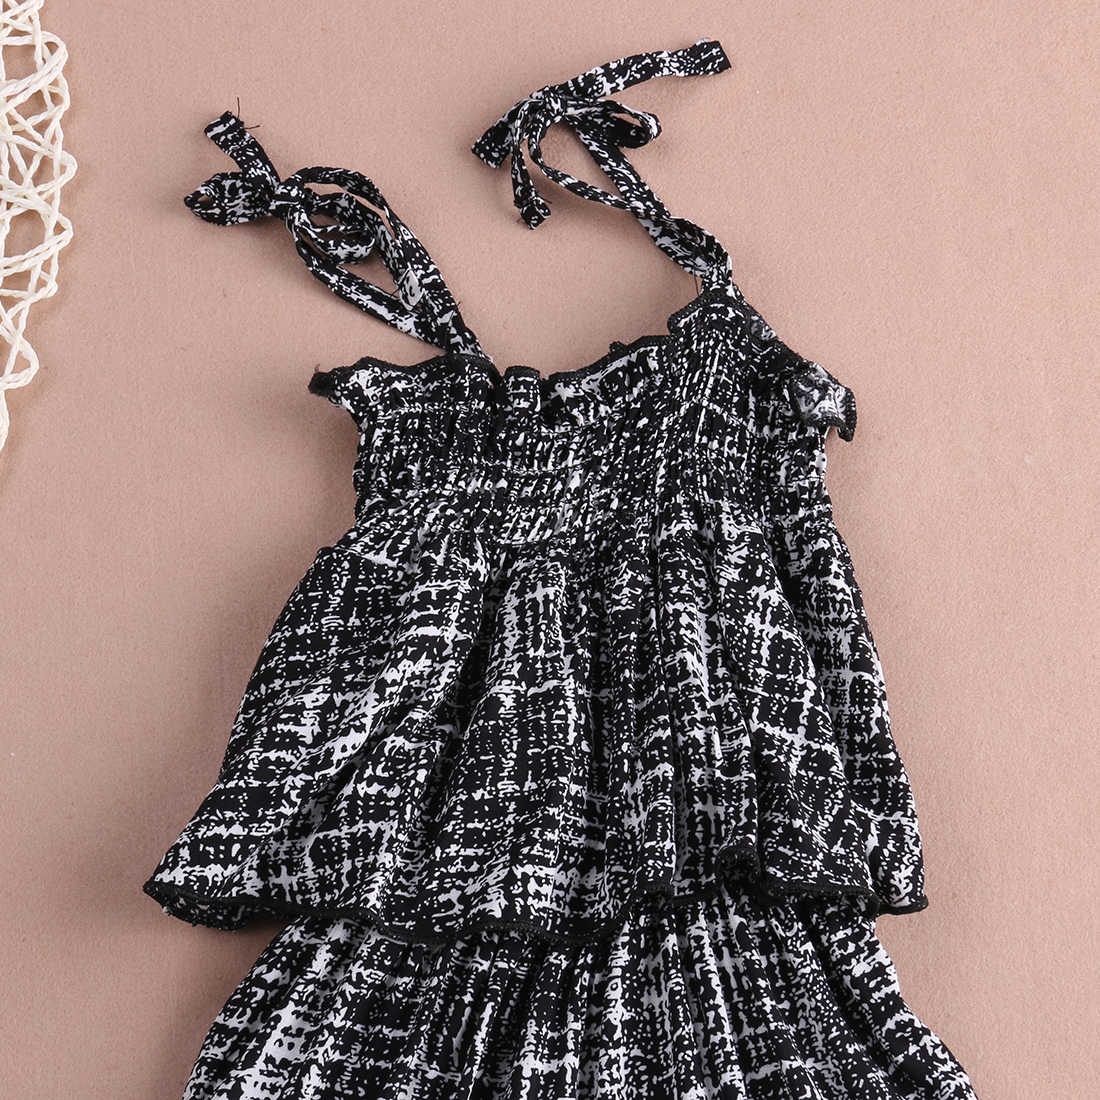 8adece467dad ... 2018 Hot Baby Girls Clothes Designer Kids Romper Fashion Child Backless  Overall Jumpsuit Playsuit Clothes 2 ...